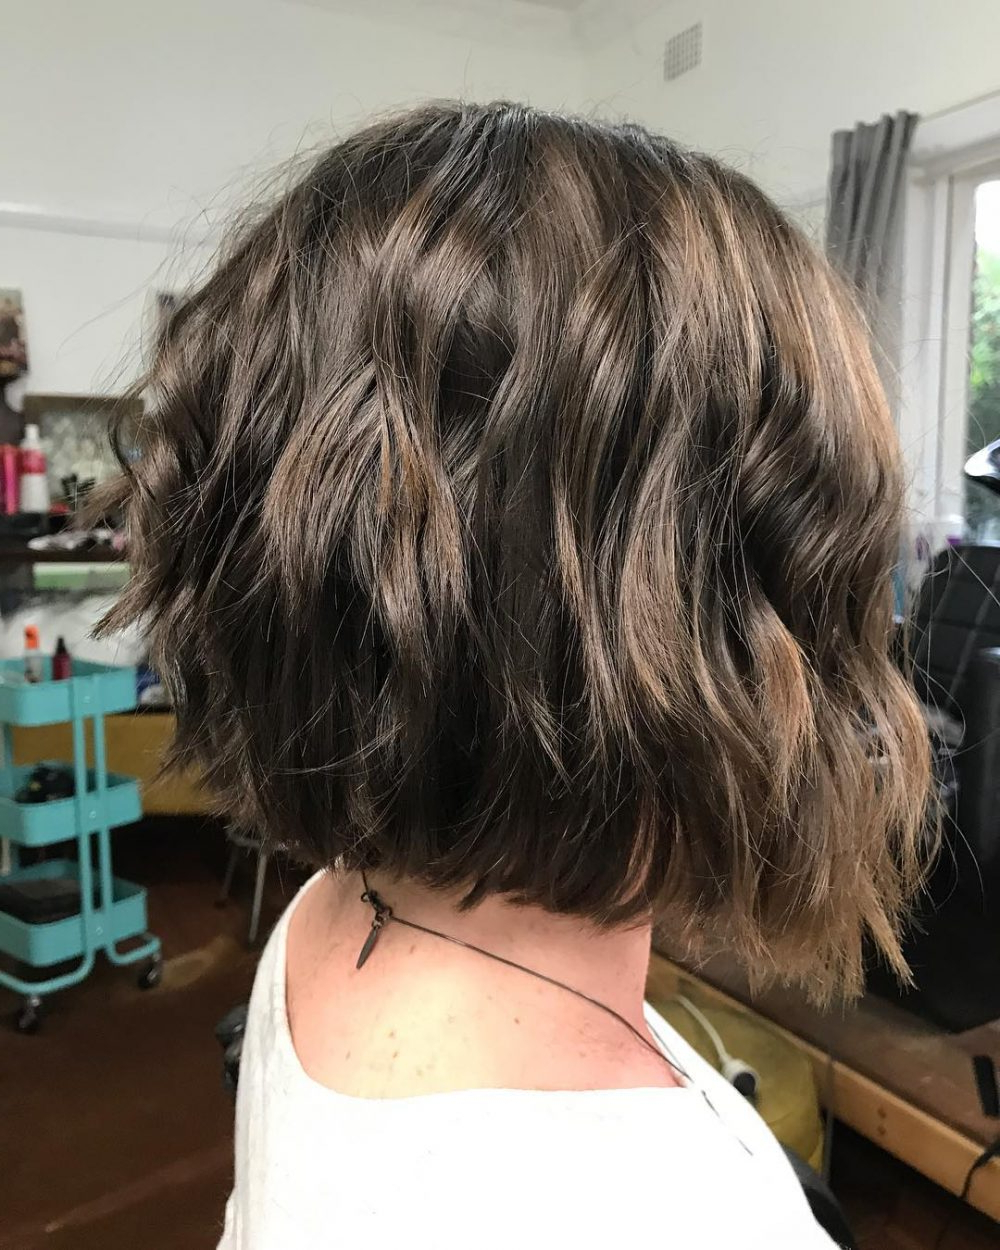 45 Chic Choppy Bob Hairstyles For 2018 Inside Blunt Bob Haircuts With Layers (View 3 of 20)